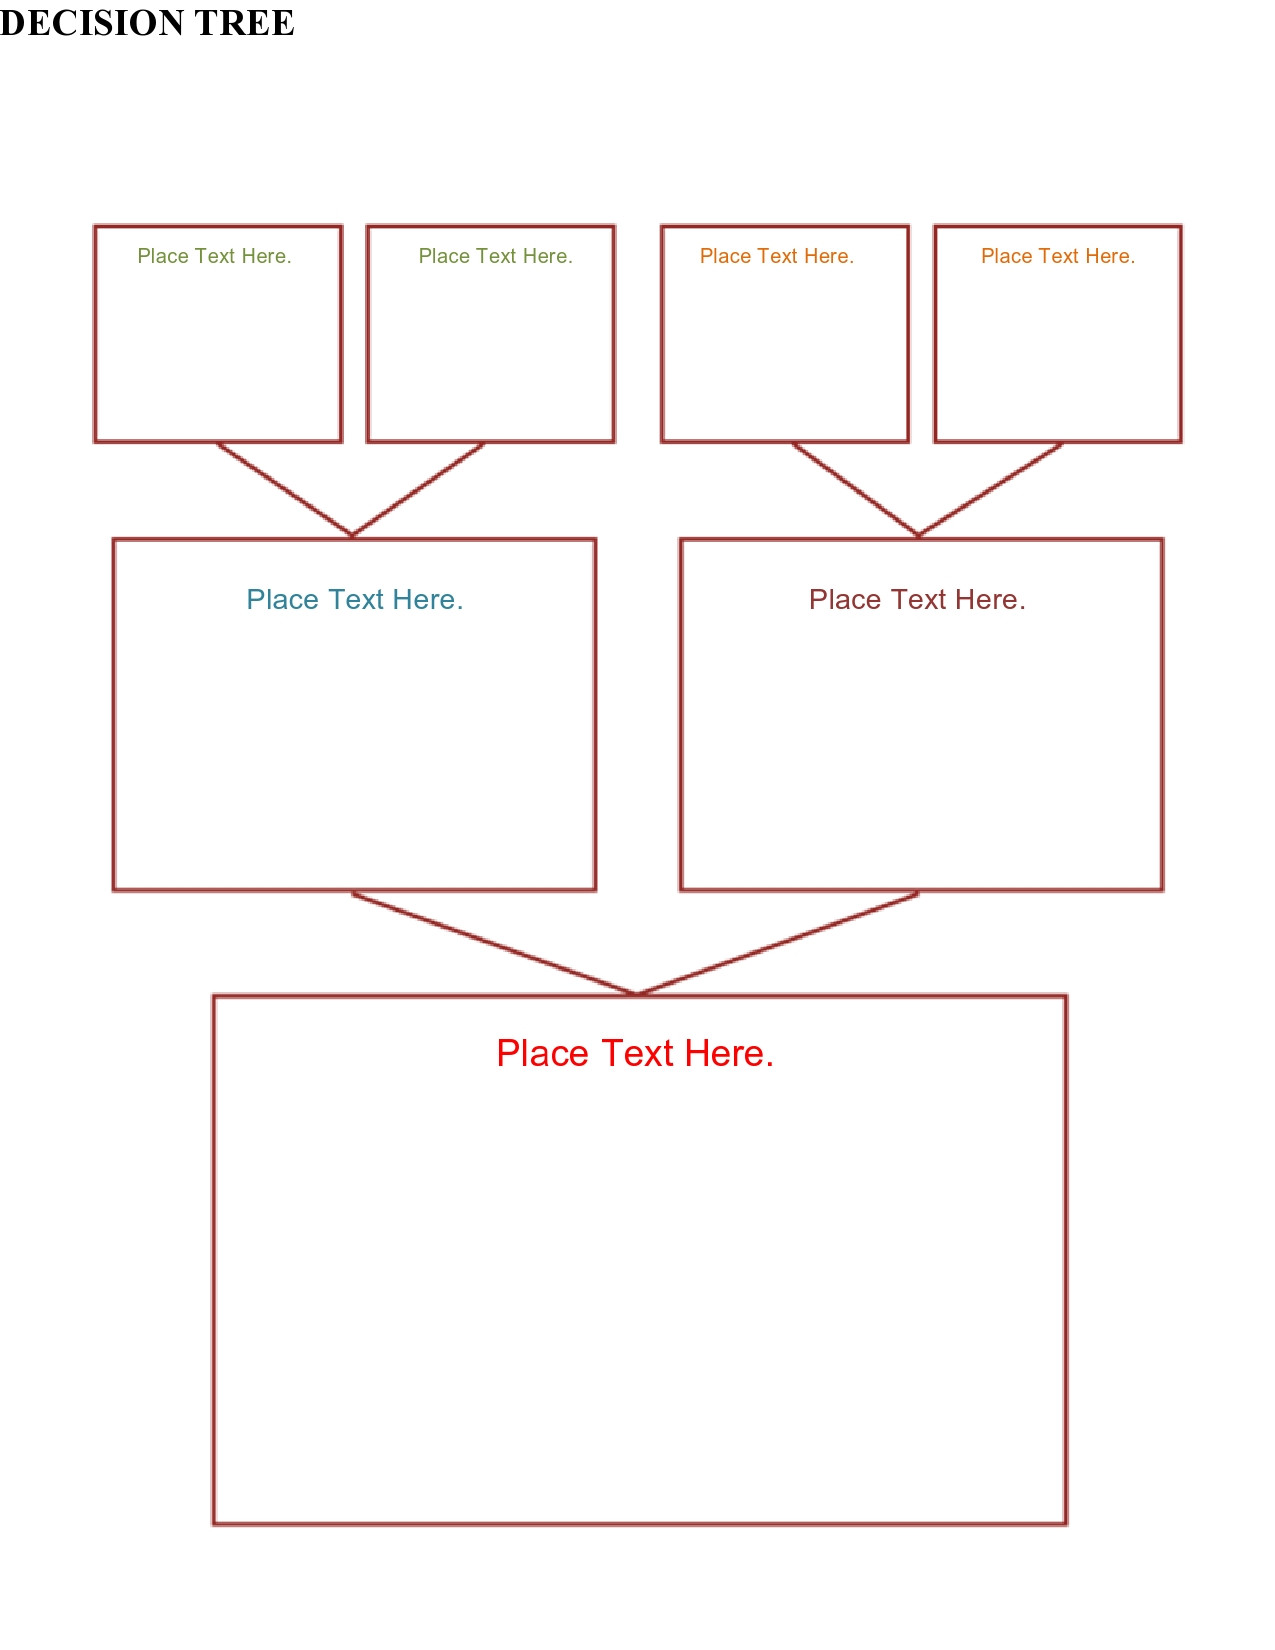 30 Free Decision Tree Templates Word & Excel TemplateArchive